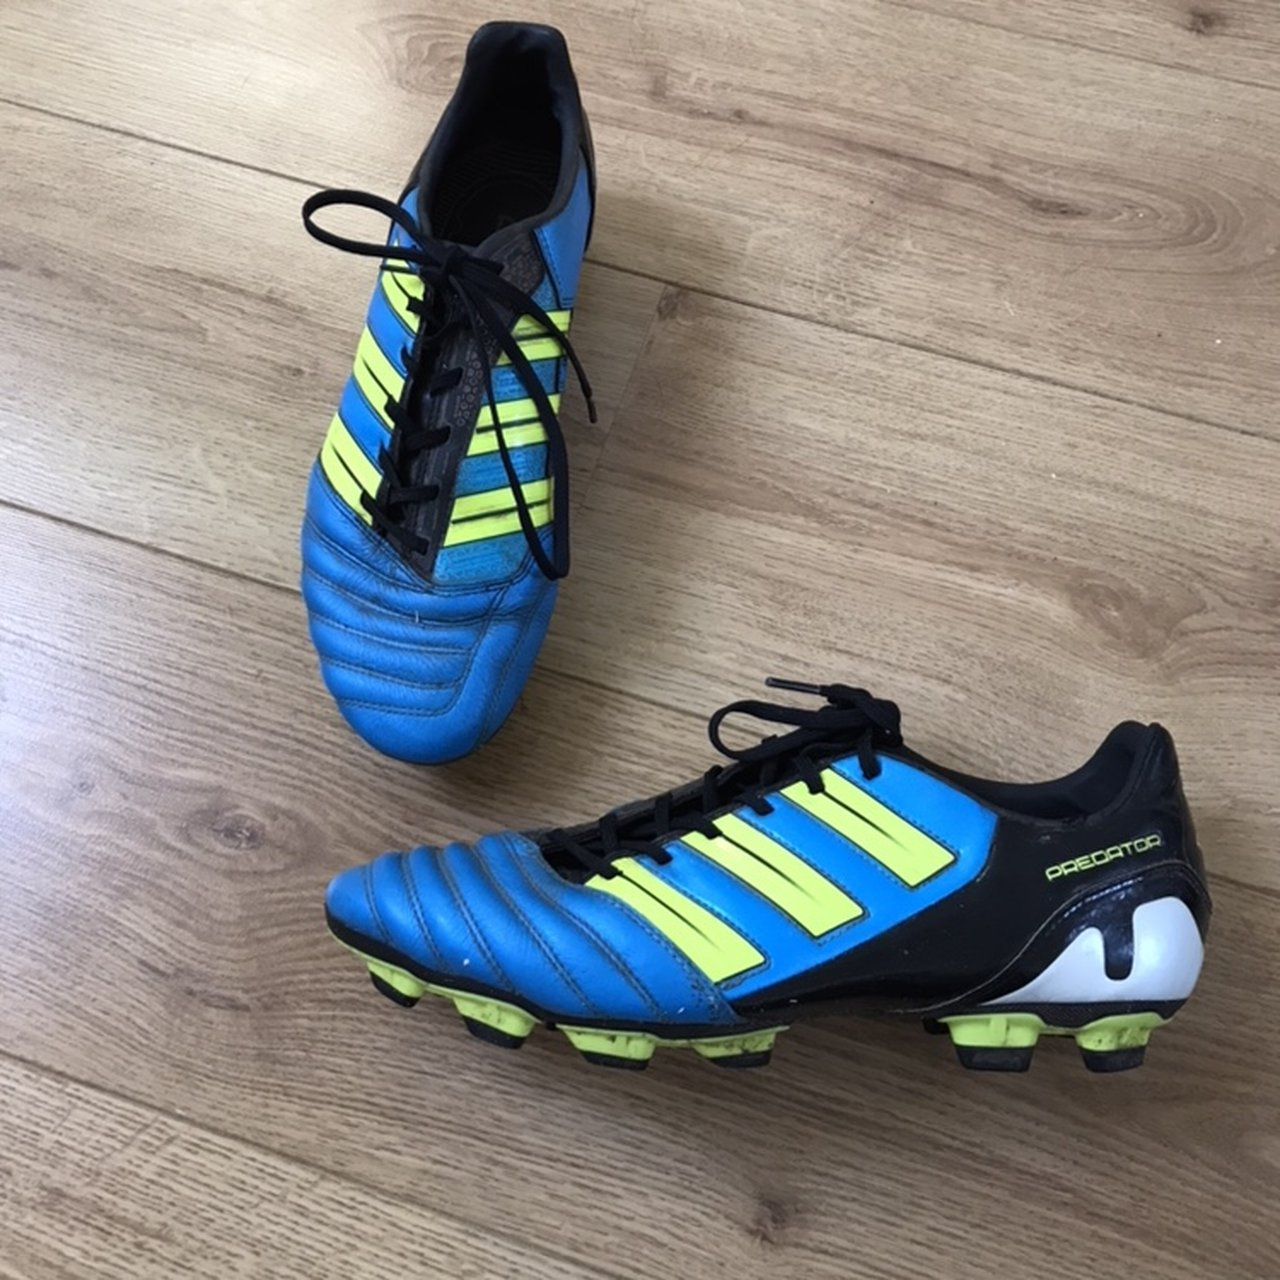 80f93797c548 @mirandalockhart. 4 months ago. Nuneaton, United Kingdom. Adidas Predator  blue and fluorescent yellow ...